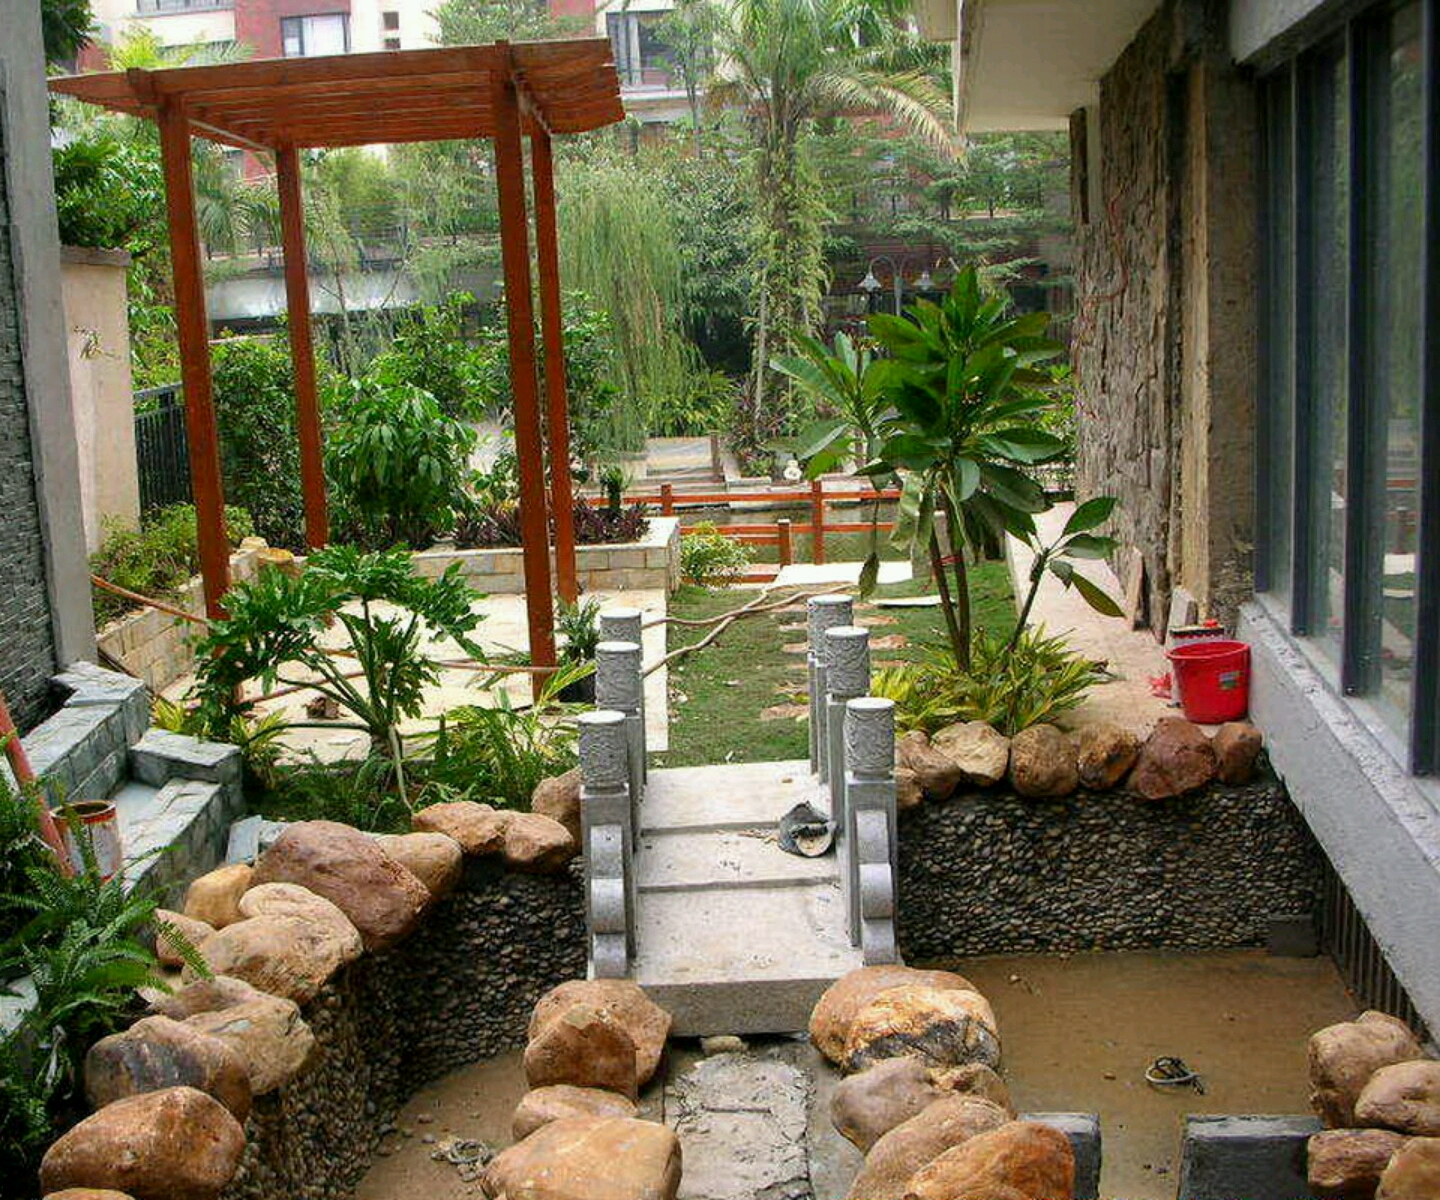 Home decor 2012 beautiful home gardens designs ideas for House garden design ideas